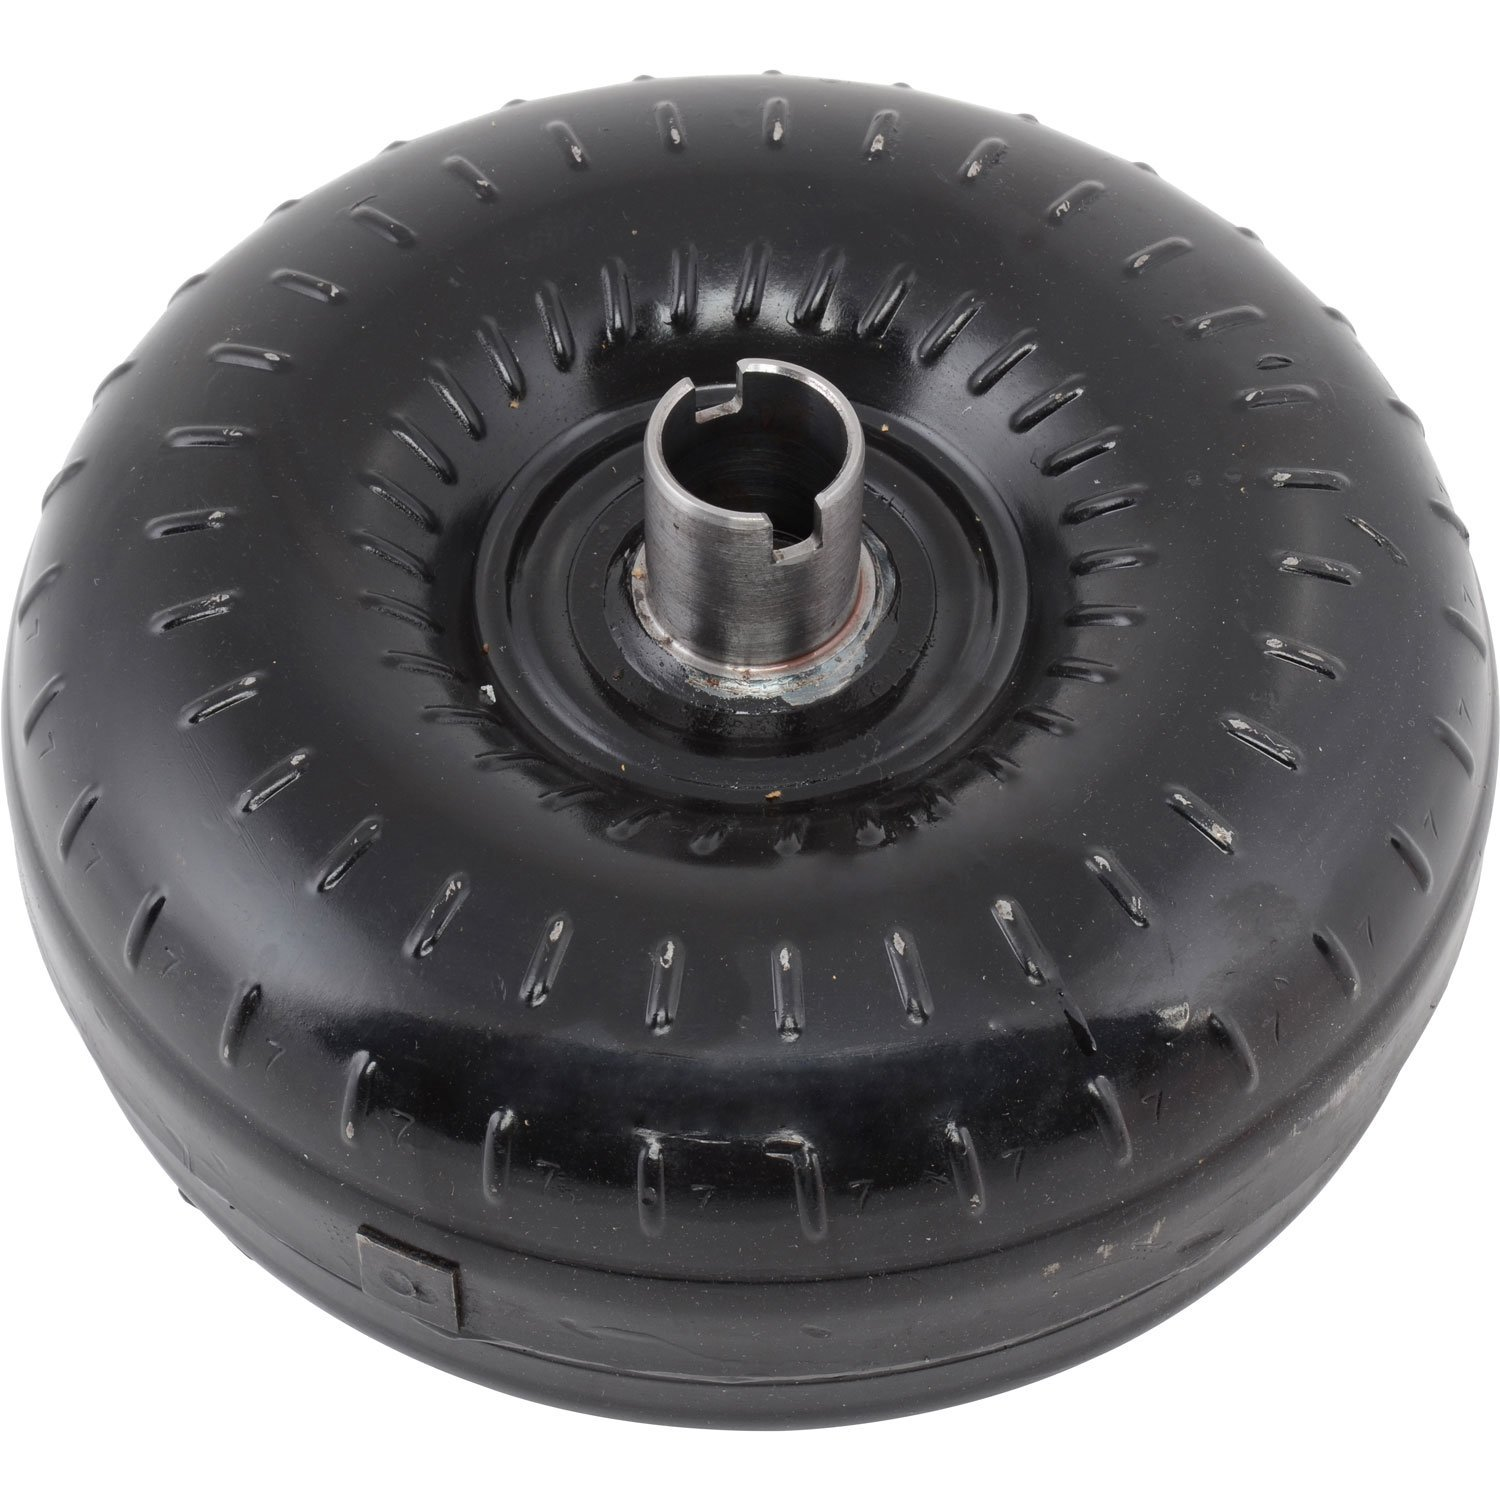 ACC Performance 48440 Lock-Up Torque Converter by ACC Performance